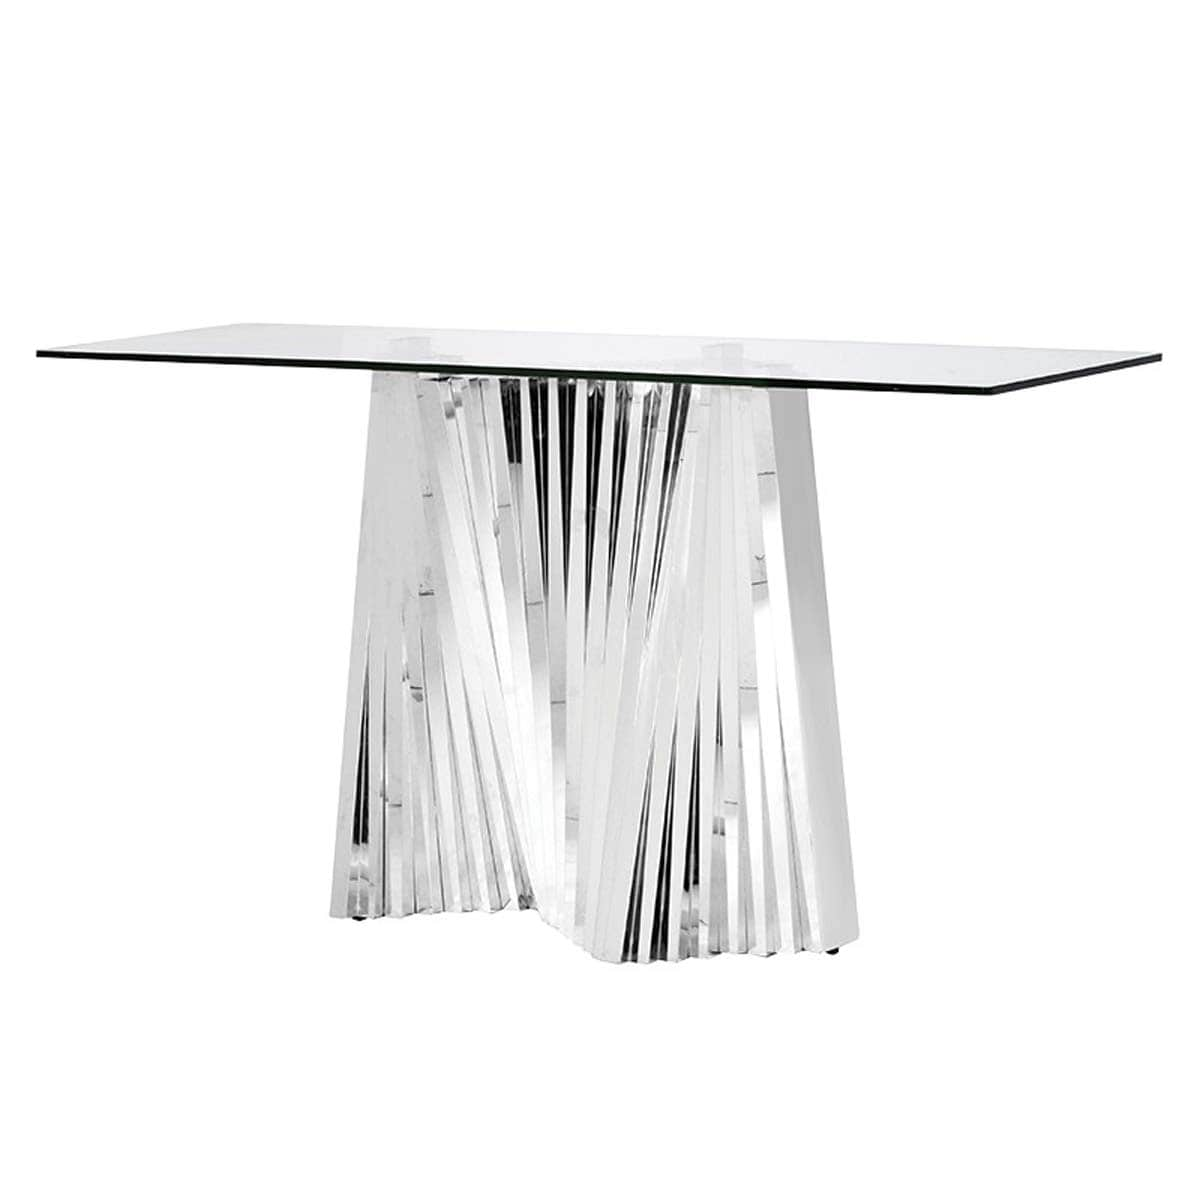 Shard Silhouette Console Table